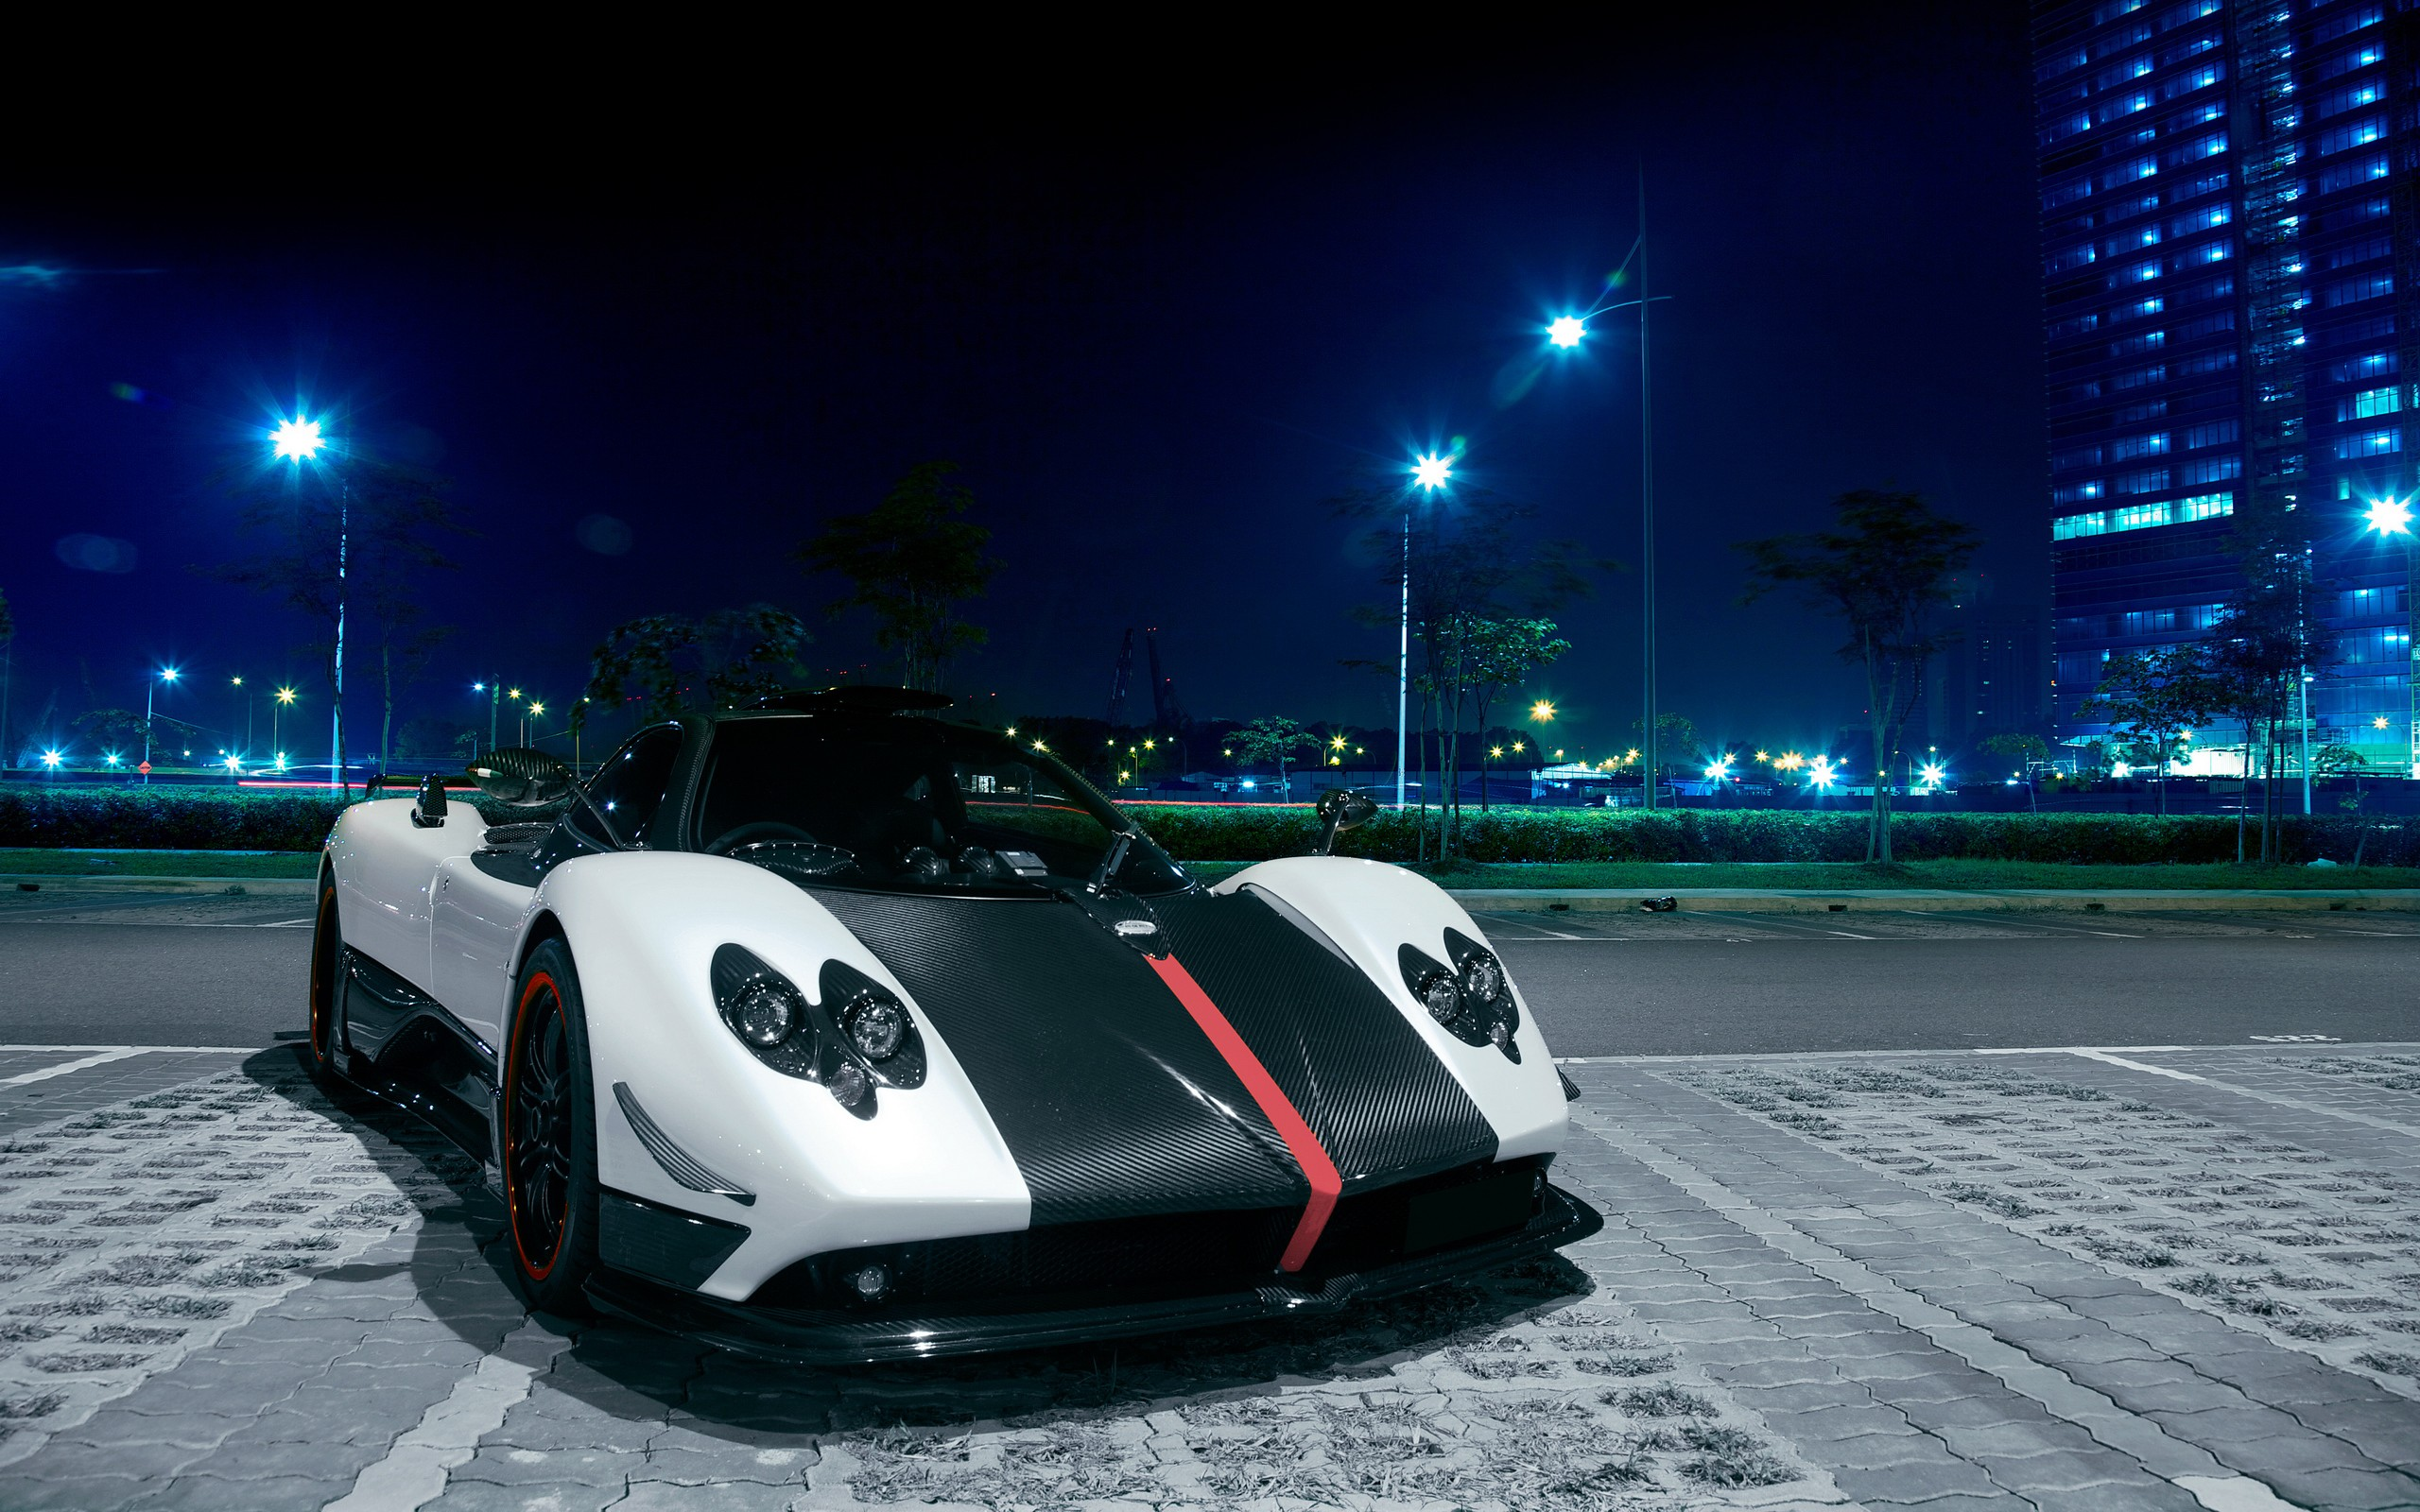 white and black car image